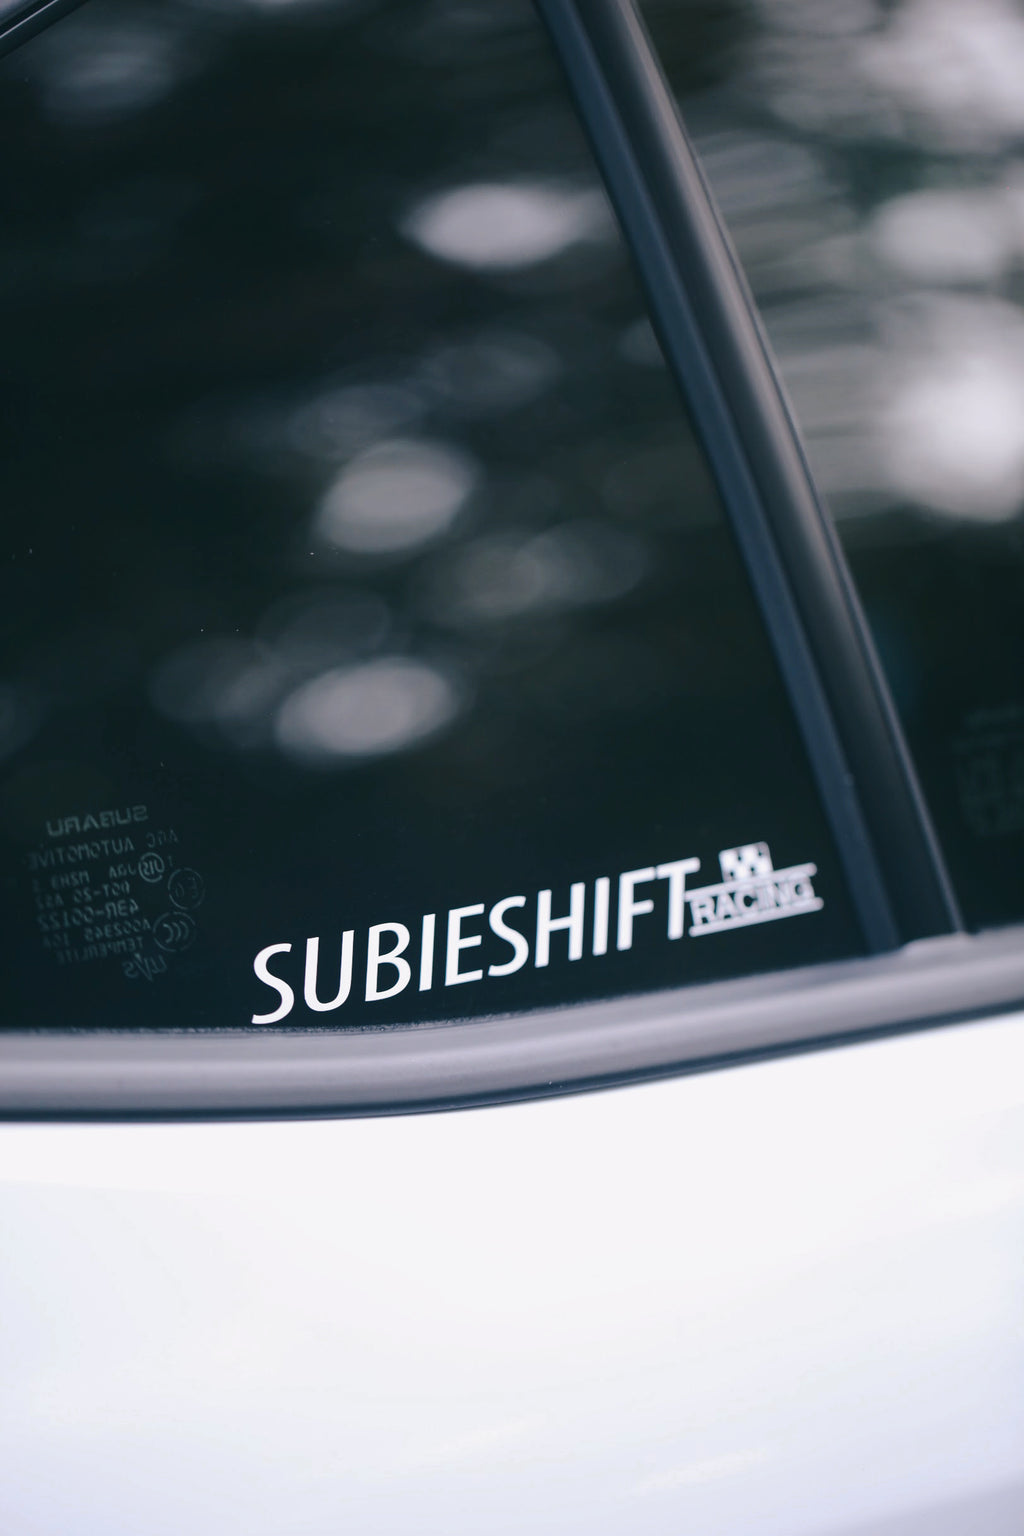 SUBIESHIFT Team Stickers